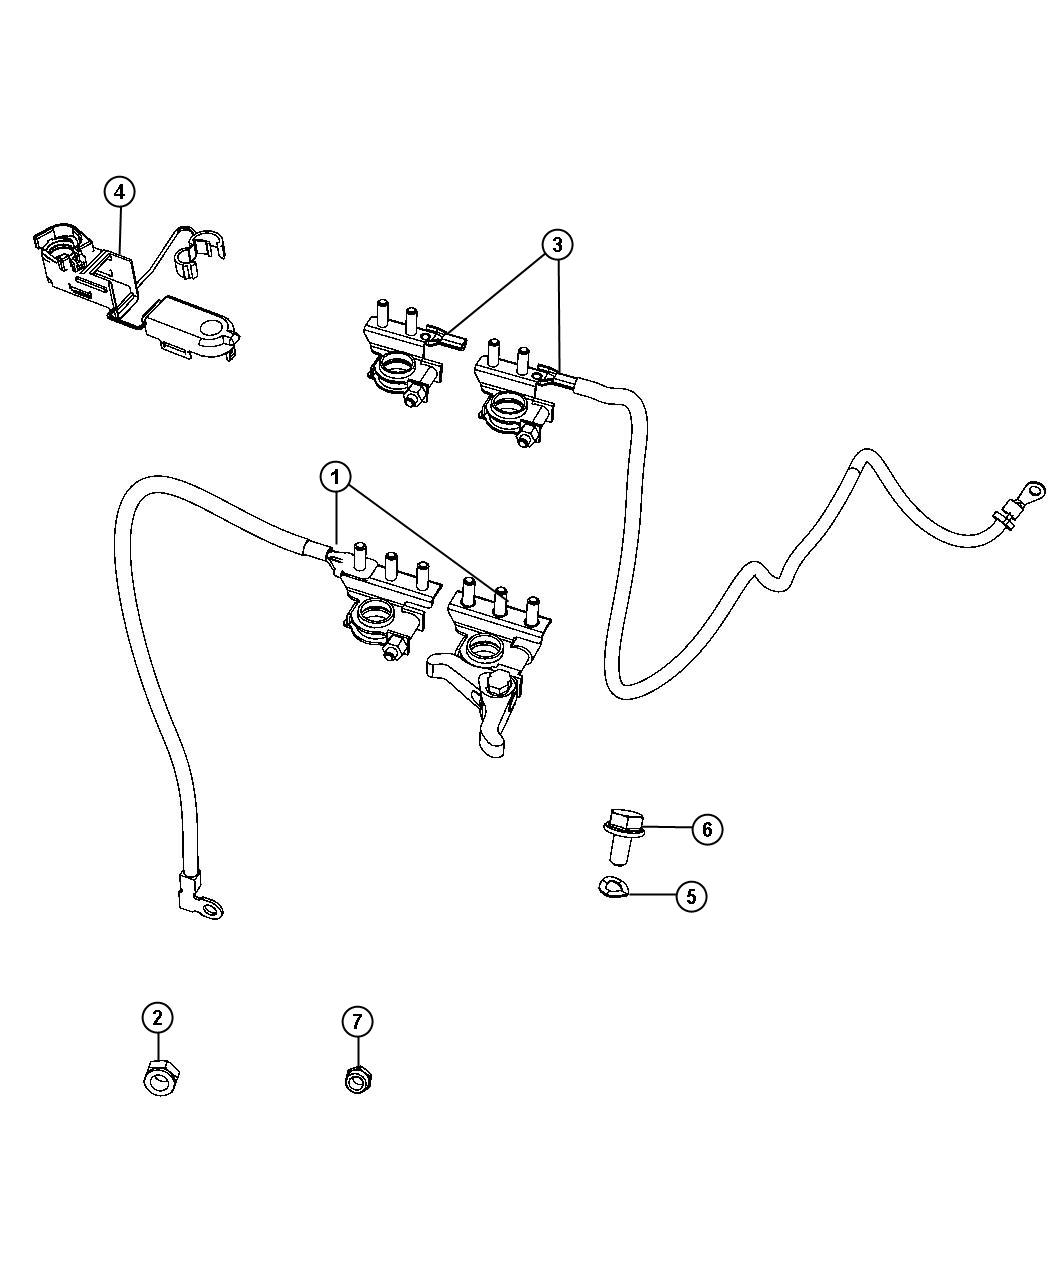 Fiat 500X Wiring. Battery positive, used for: alternator